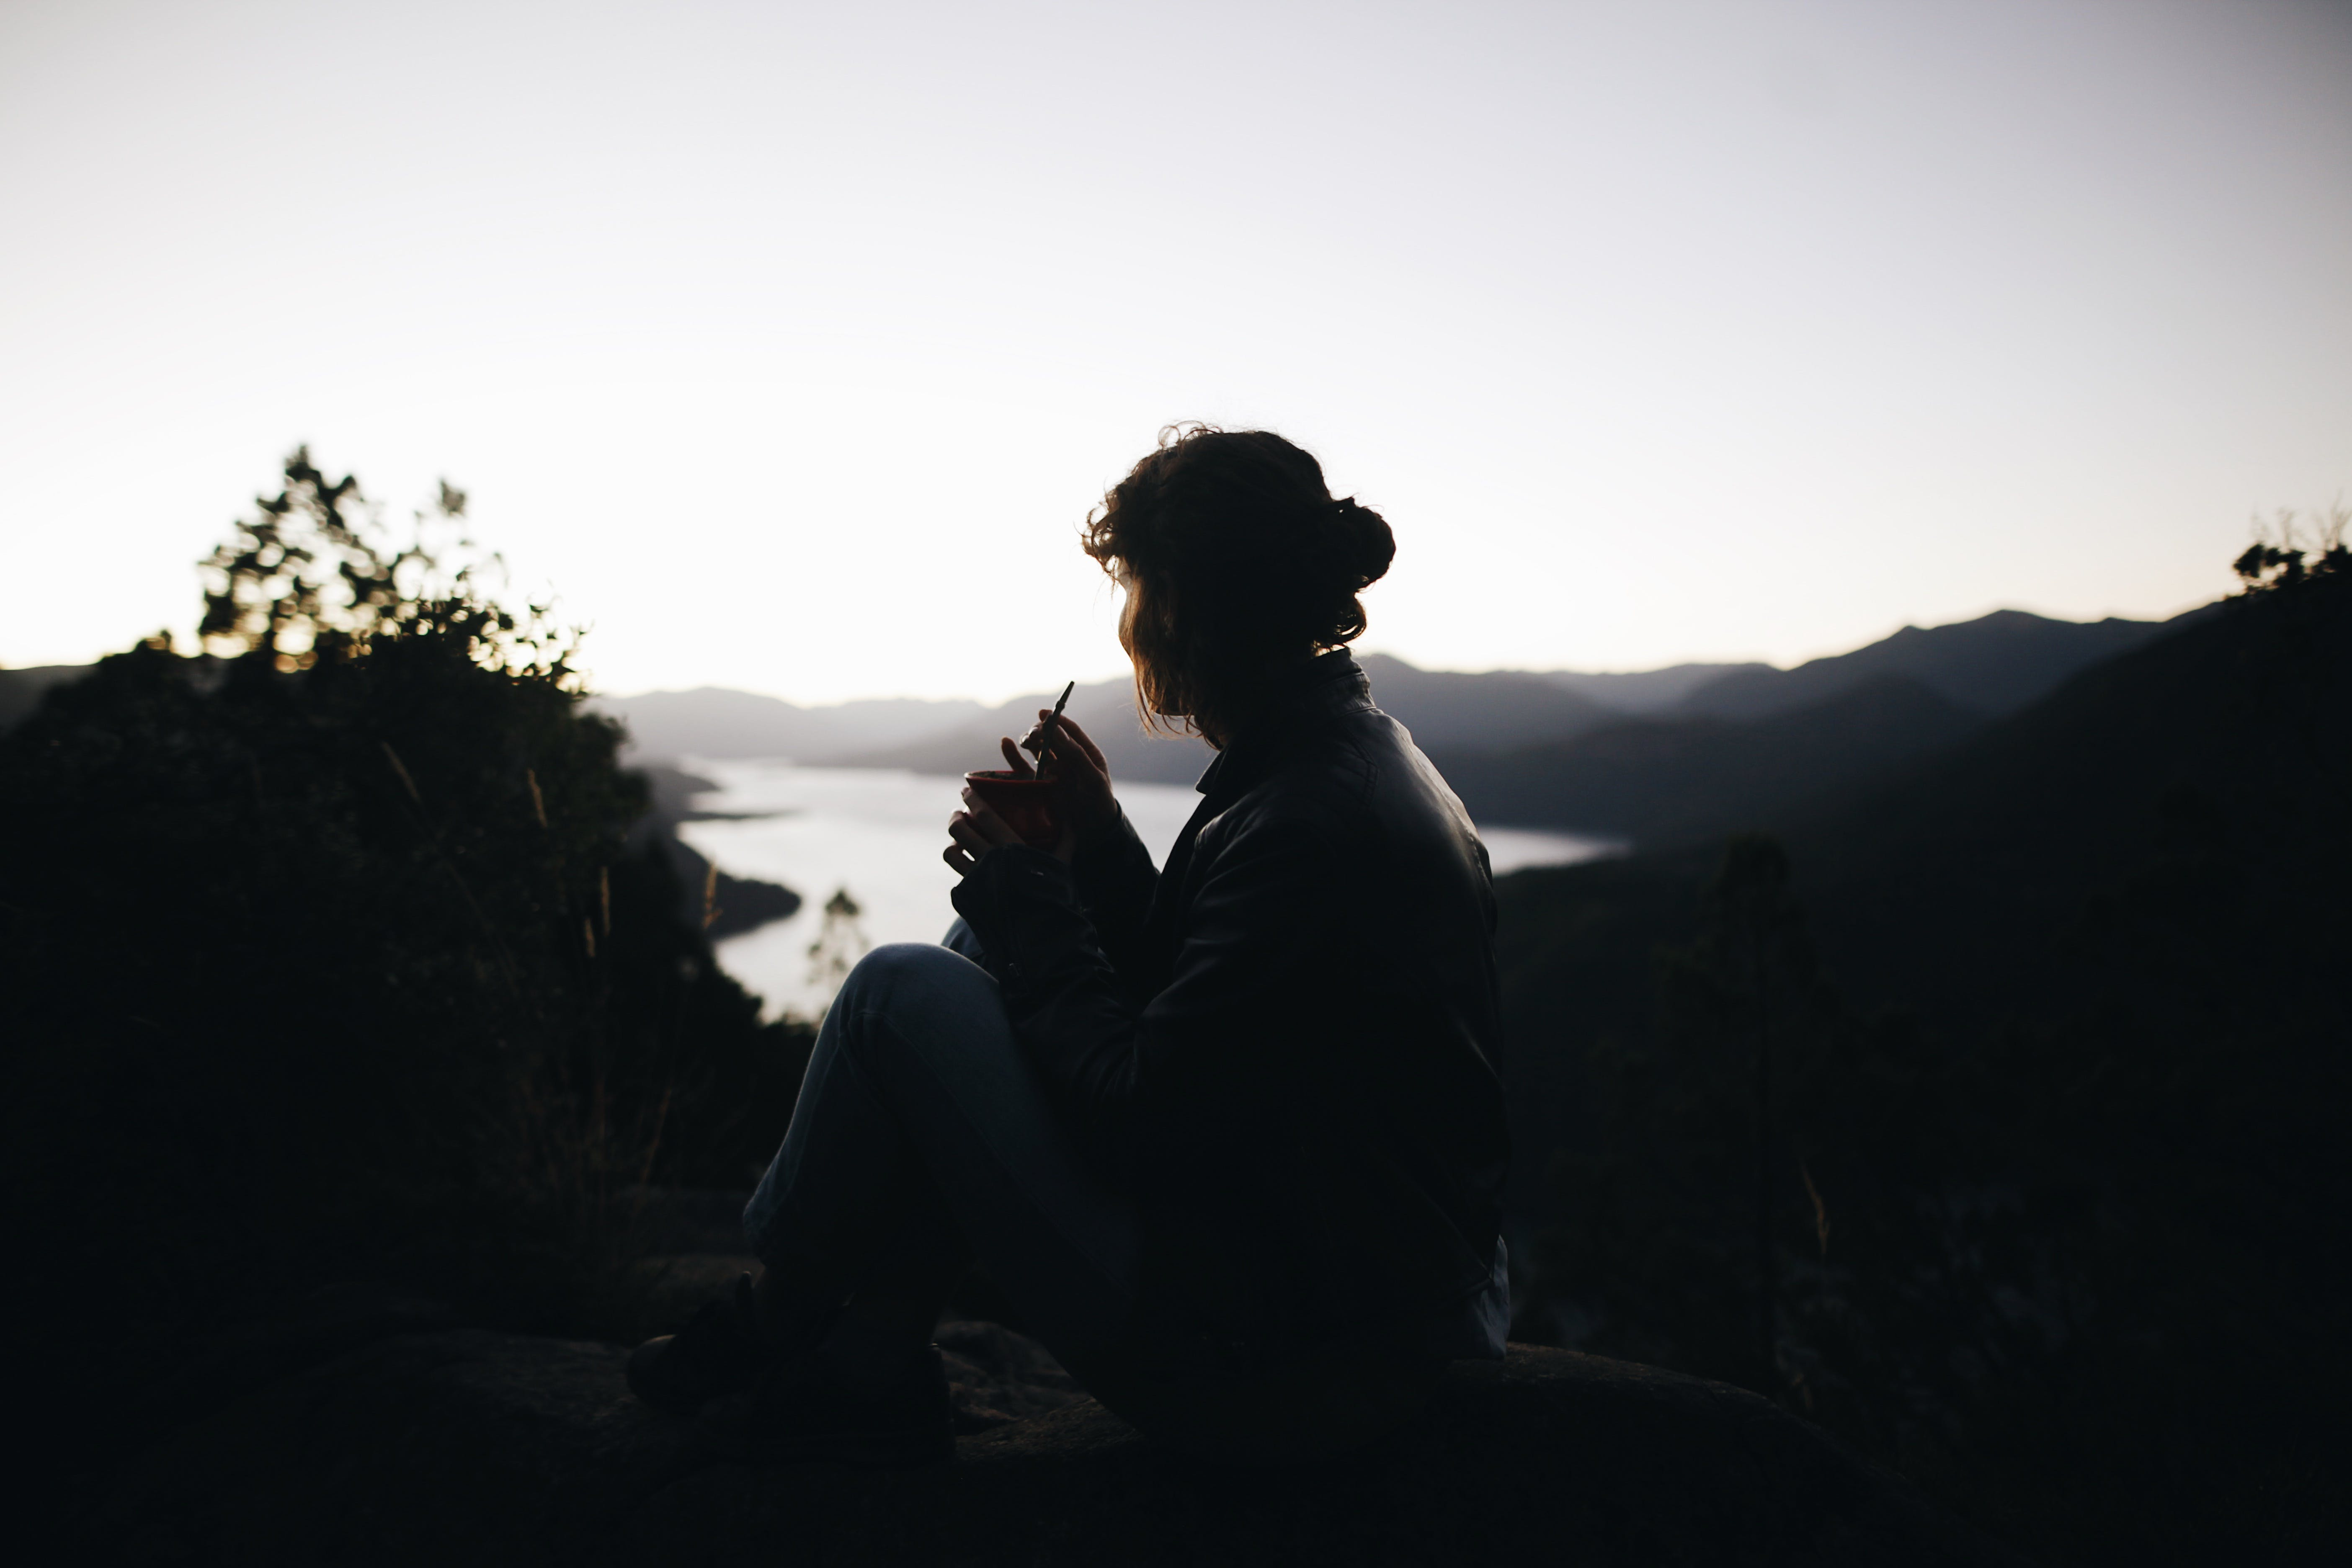 Silhouette of Person Sitting Beside Plant Across Large Body of Water